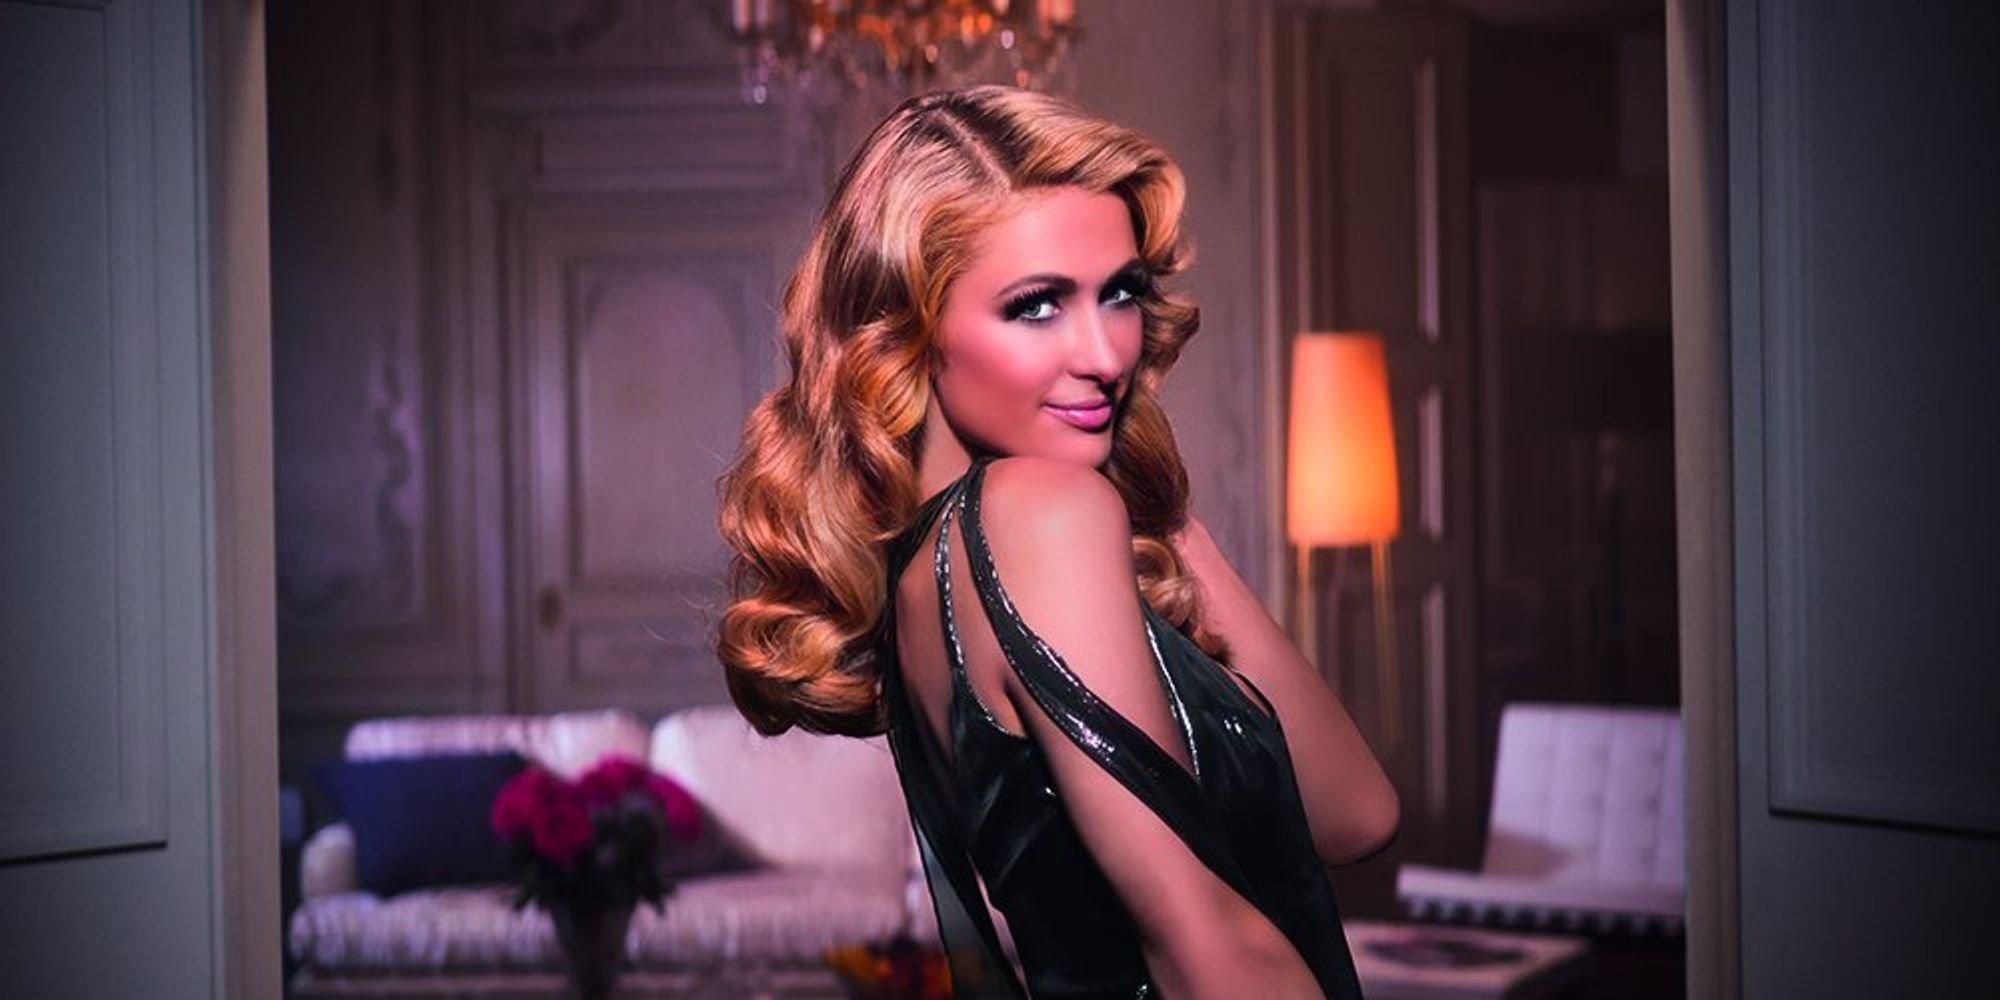 Boohoo Com X Paris Hilton New Collaboration: Paris Hilton's Lidl Haircare Collaboration Announcement